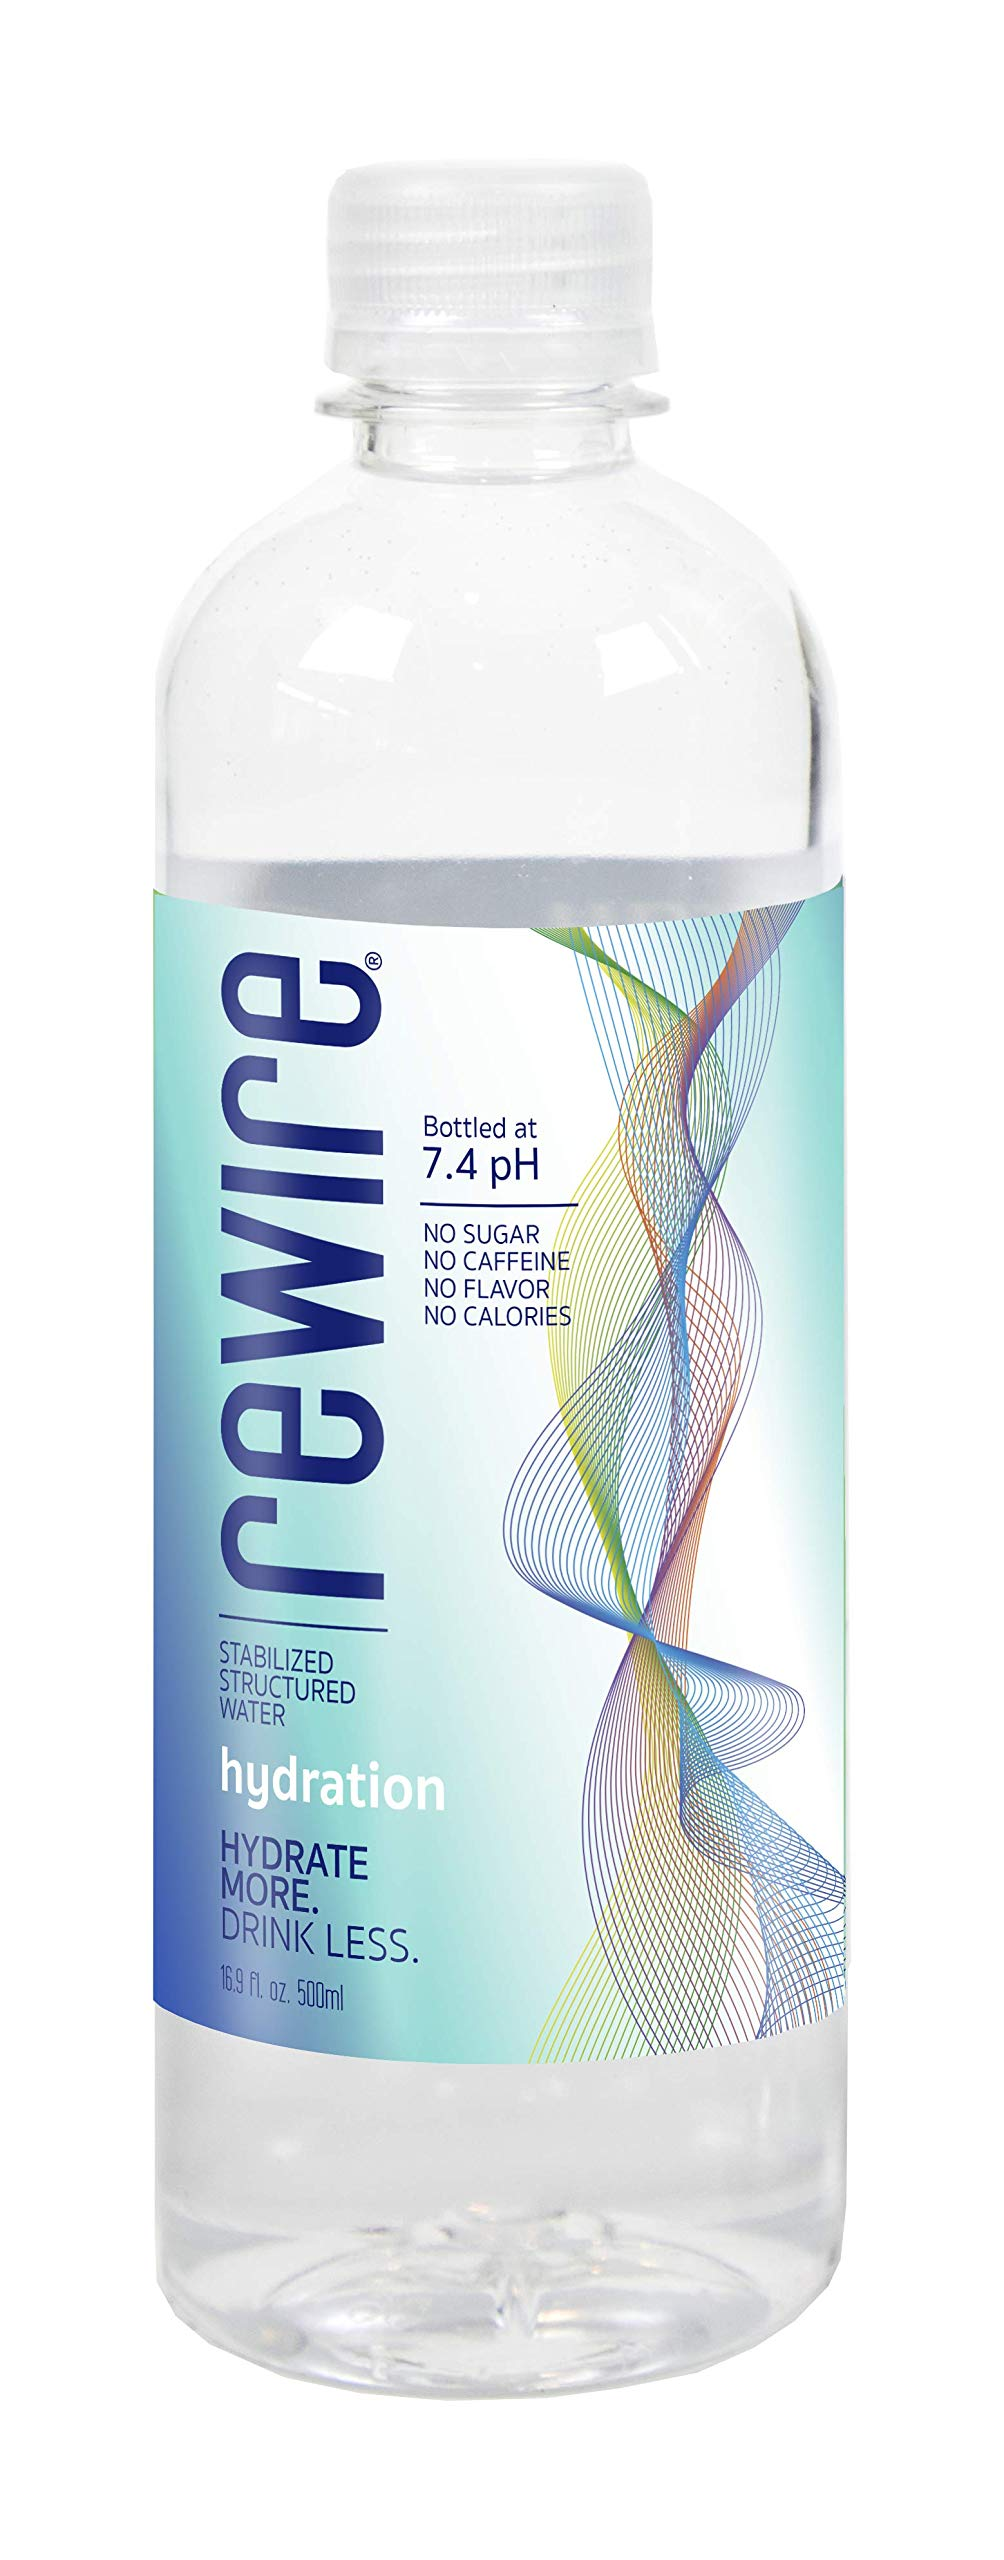 REWIRE Hydration, Stabilized Structured Bottled Water Enhanced with Trace Minerals, bottled at 7.4 pH, Hydrate More. Drink Less. 16.9 Fl. Oz (Pack of 24) by REWIRE